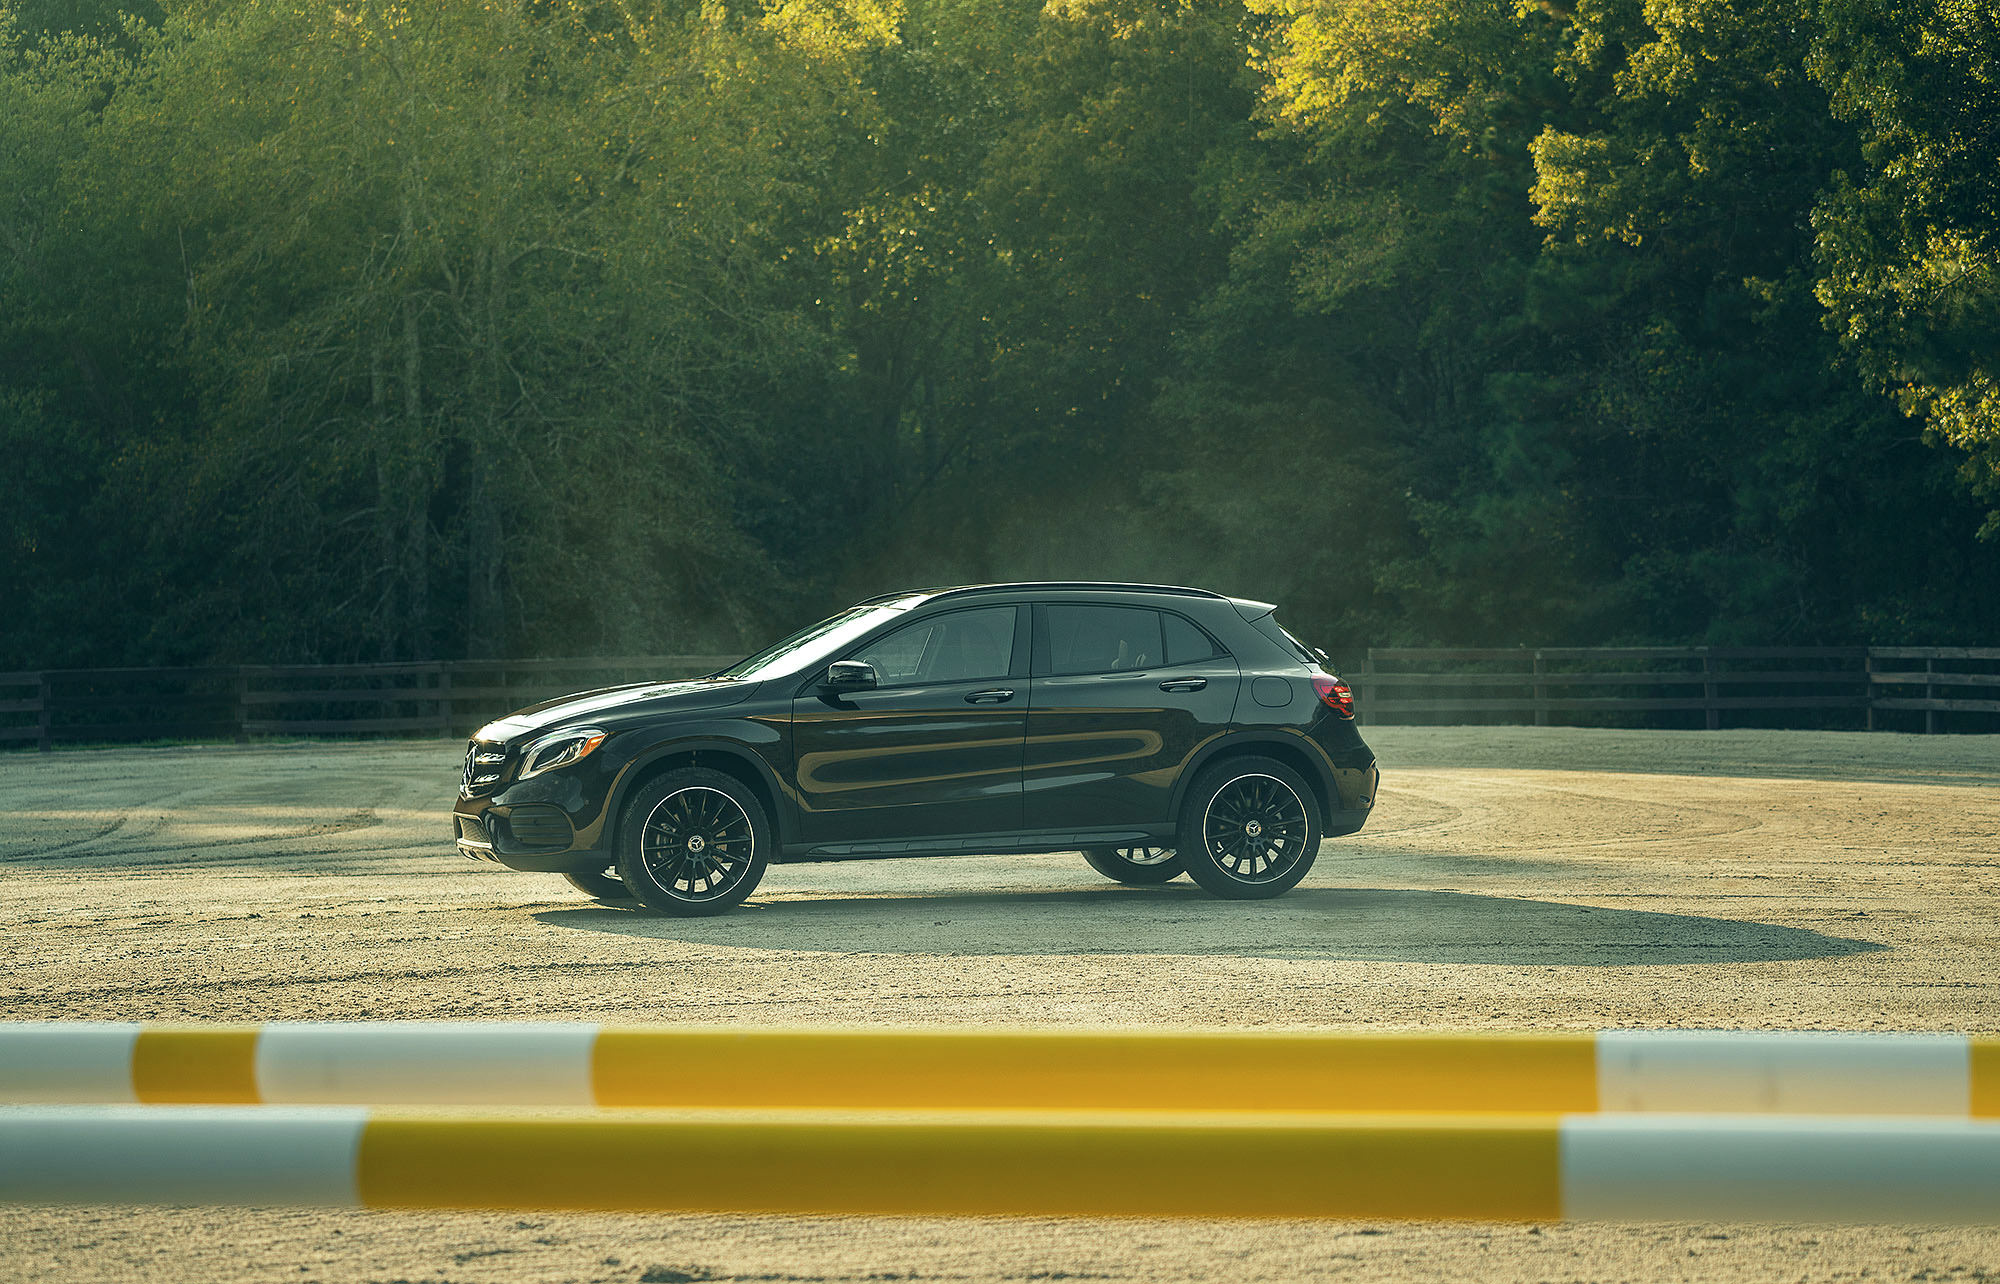 Mercedes-Benz GLA SUV in horse riding arena